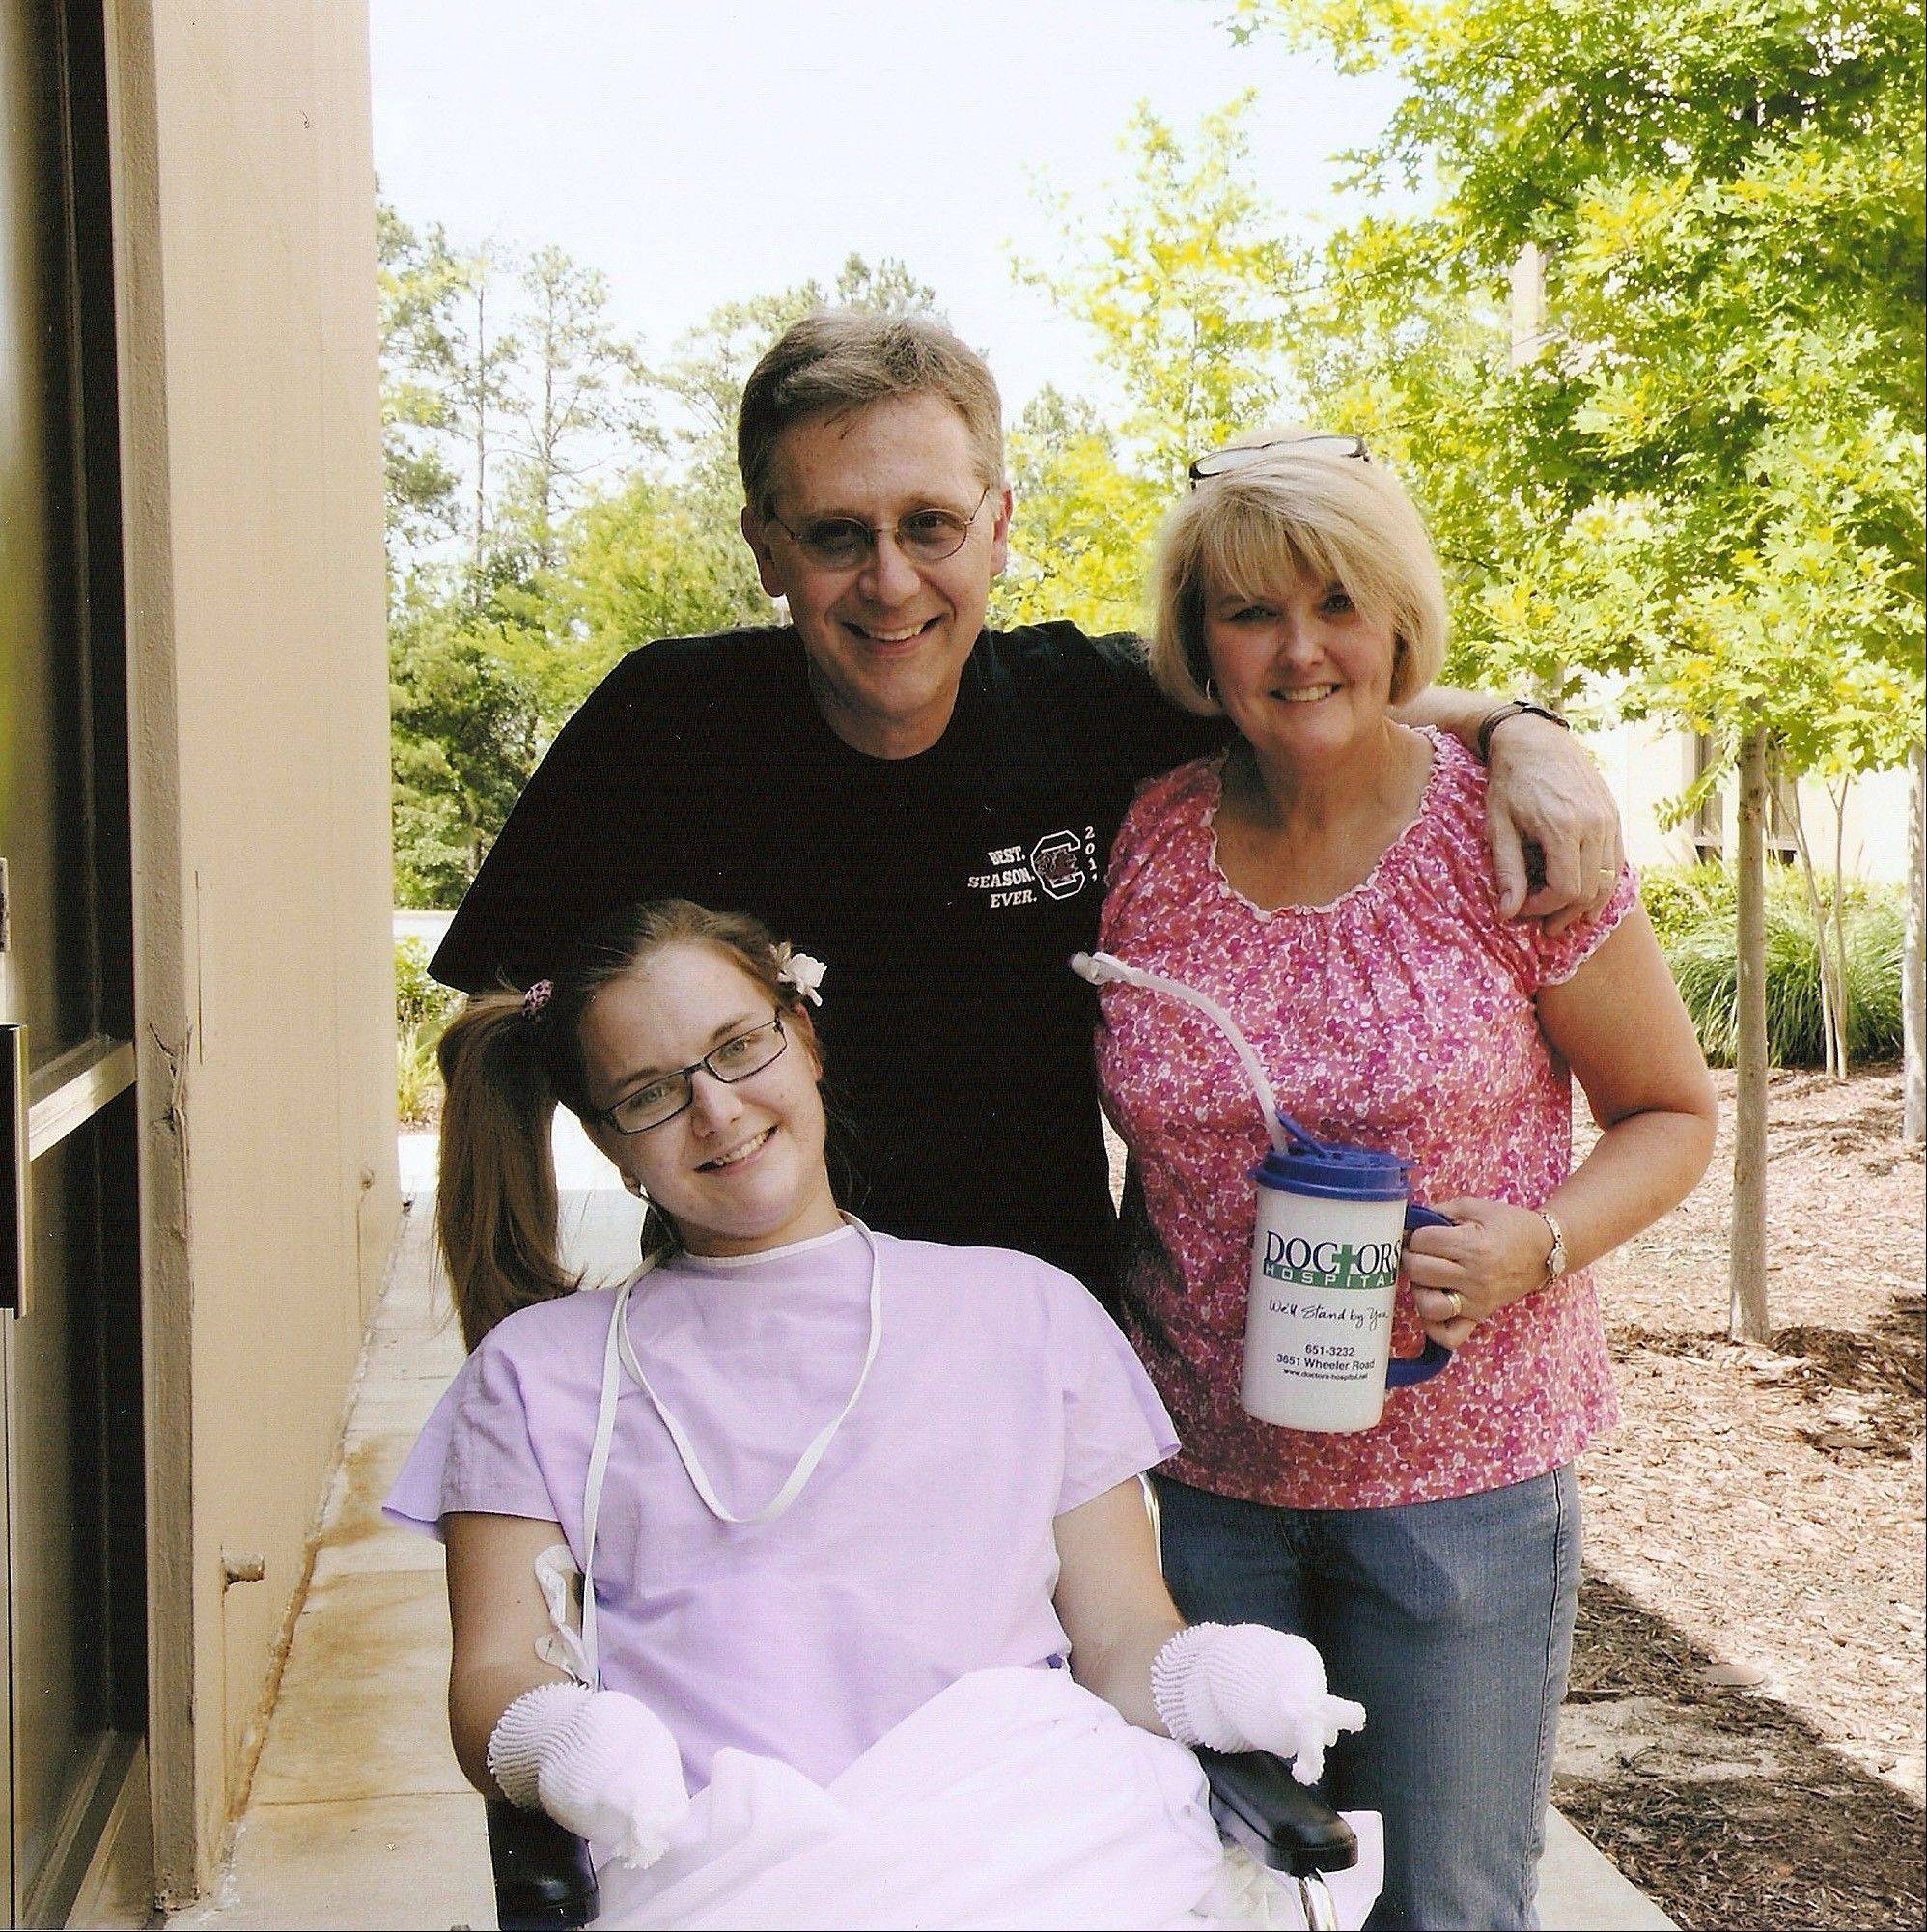 This Saturday, June 23, 2012 photo shows Aimee Copeland, left, with her parents, Andy and Donna Copeland, outside Doctors Hospital in Augusta, Ga.